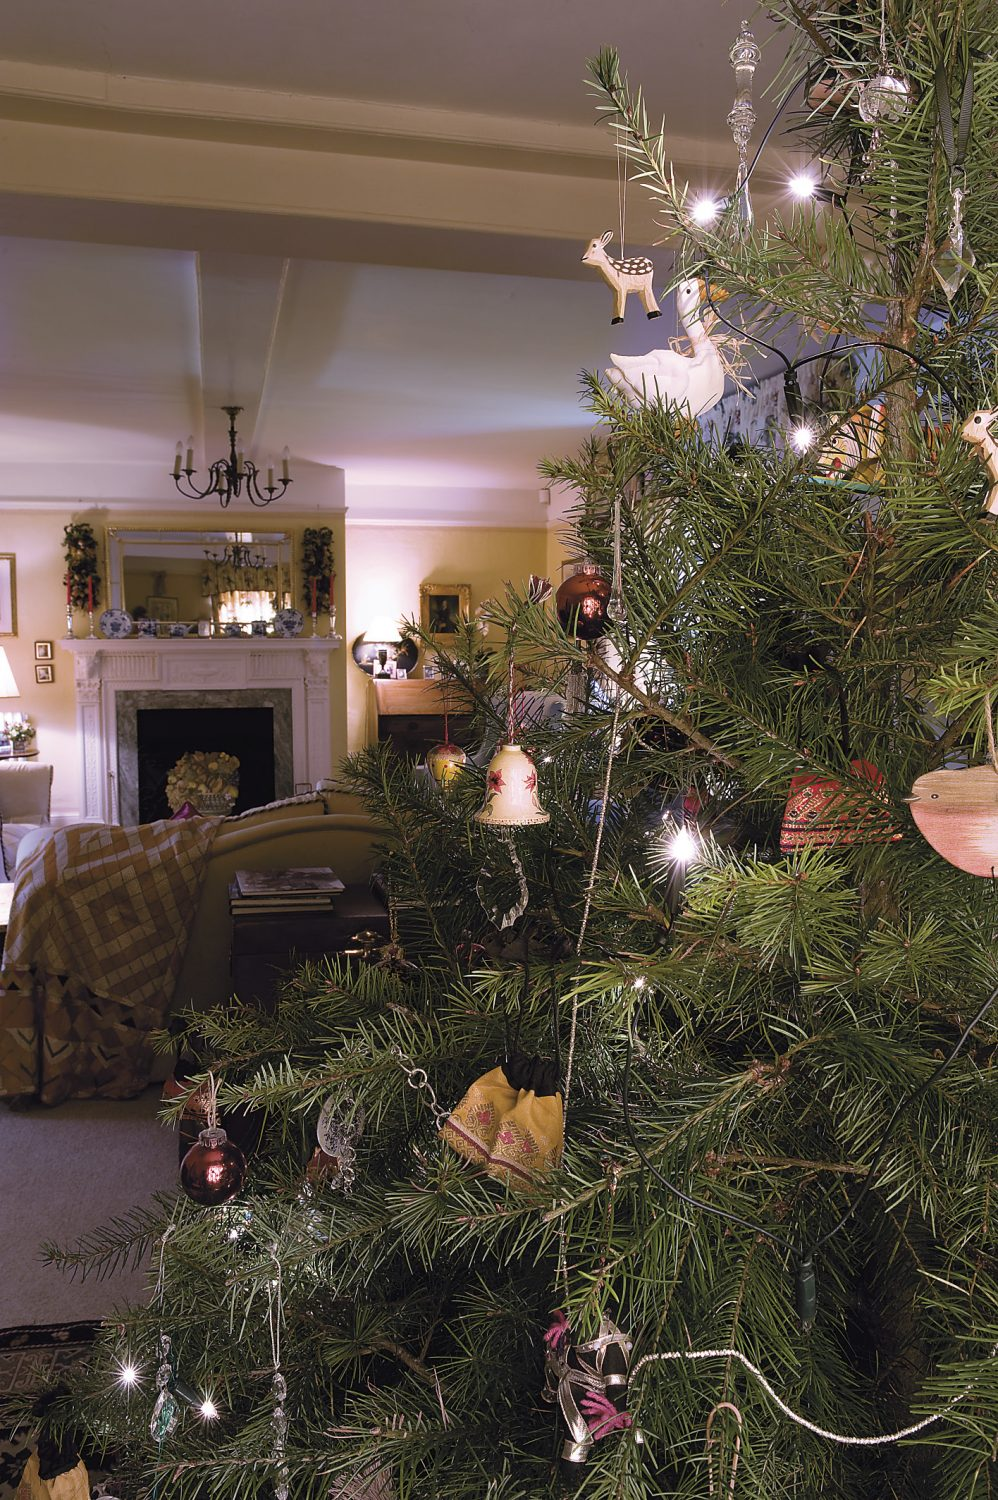 the Christmas tree in the drawing room has traditional decorations which have been collected by the family over the years